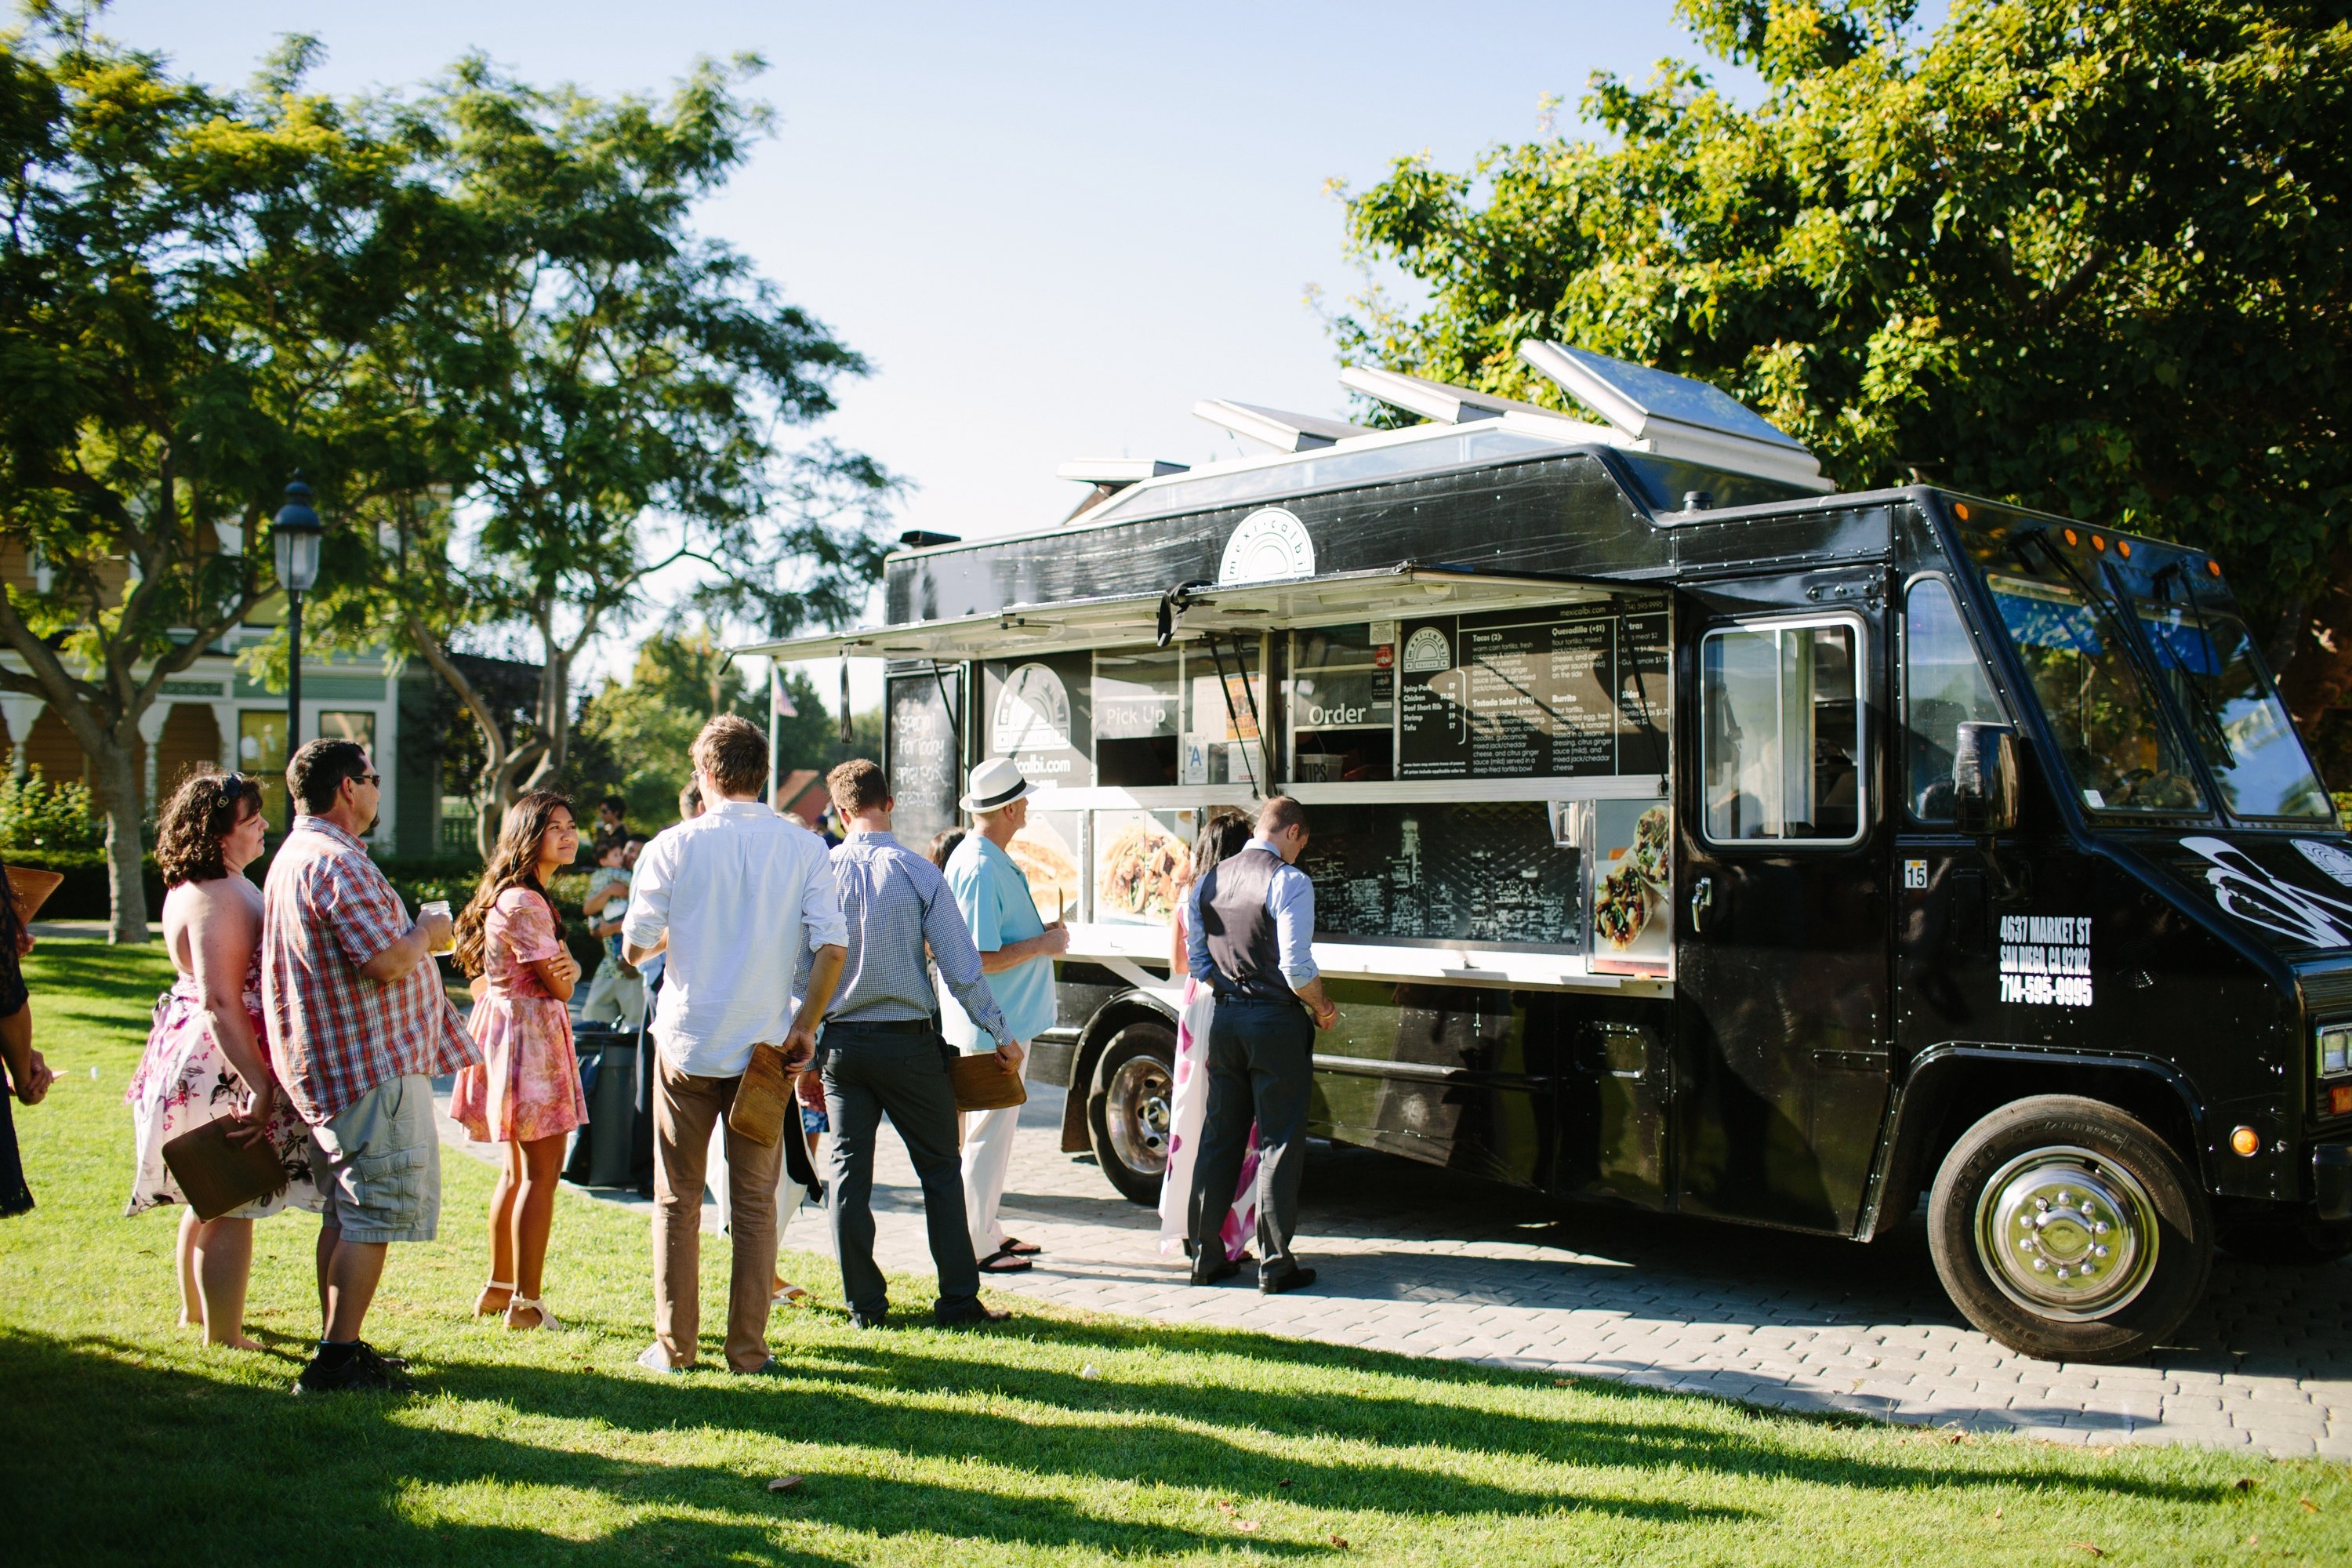 Content strategy like gourmet food truck